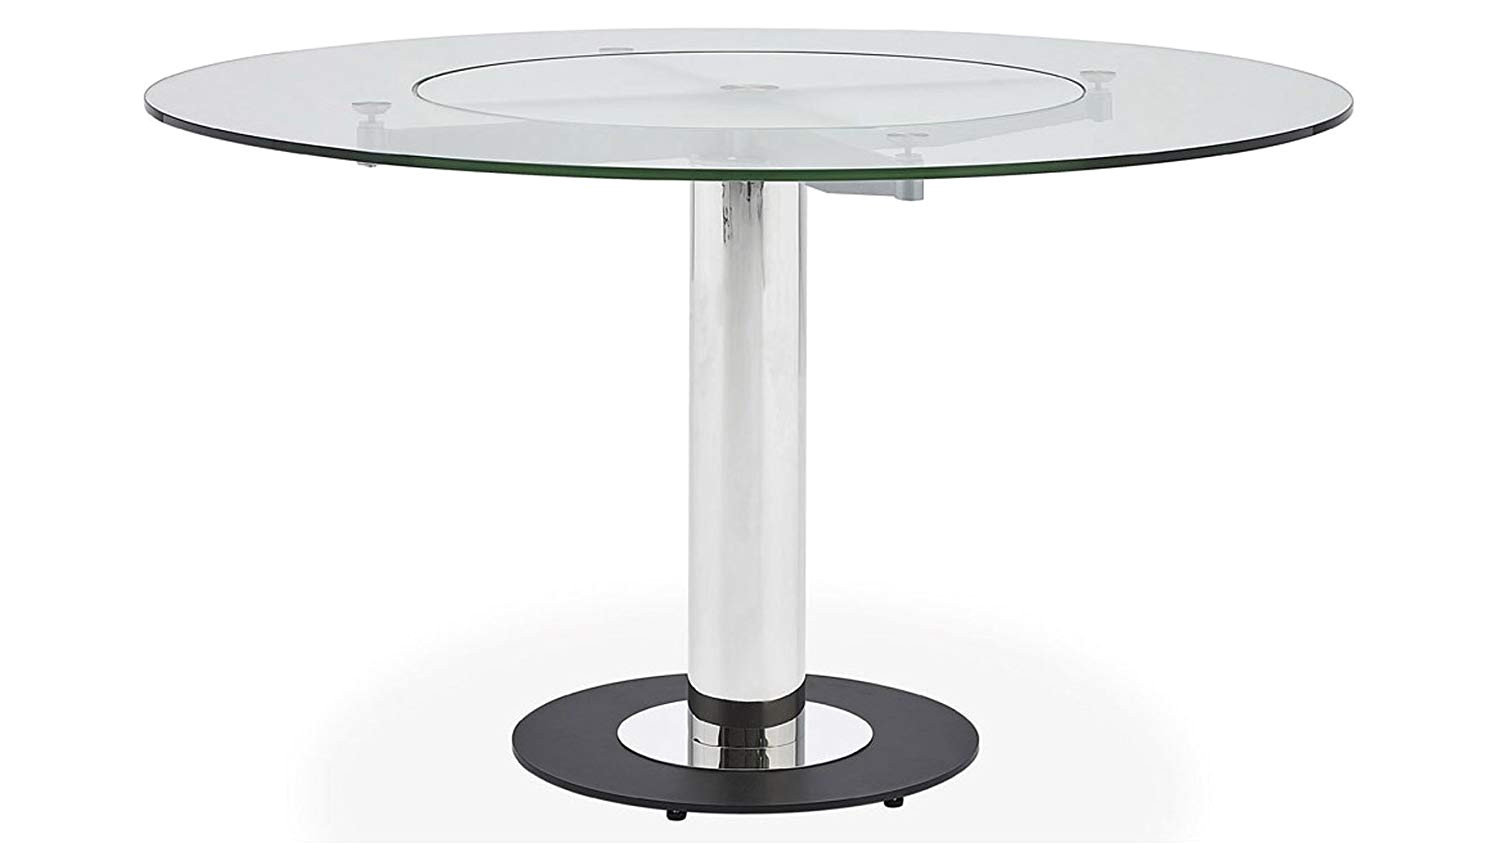 amazon com zuri furniture fiore modern round glass dining table with chrome base tables